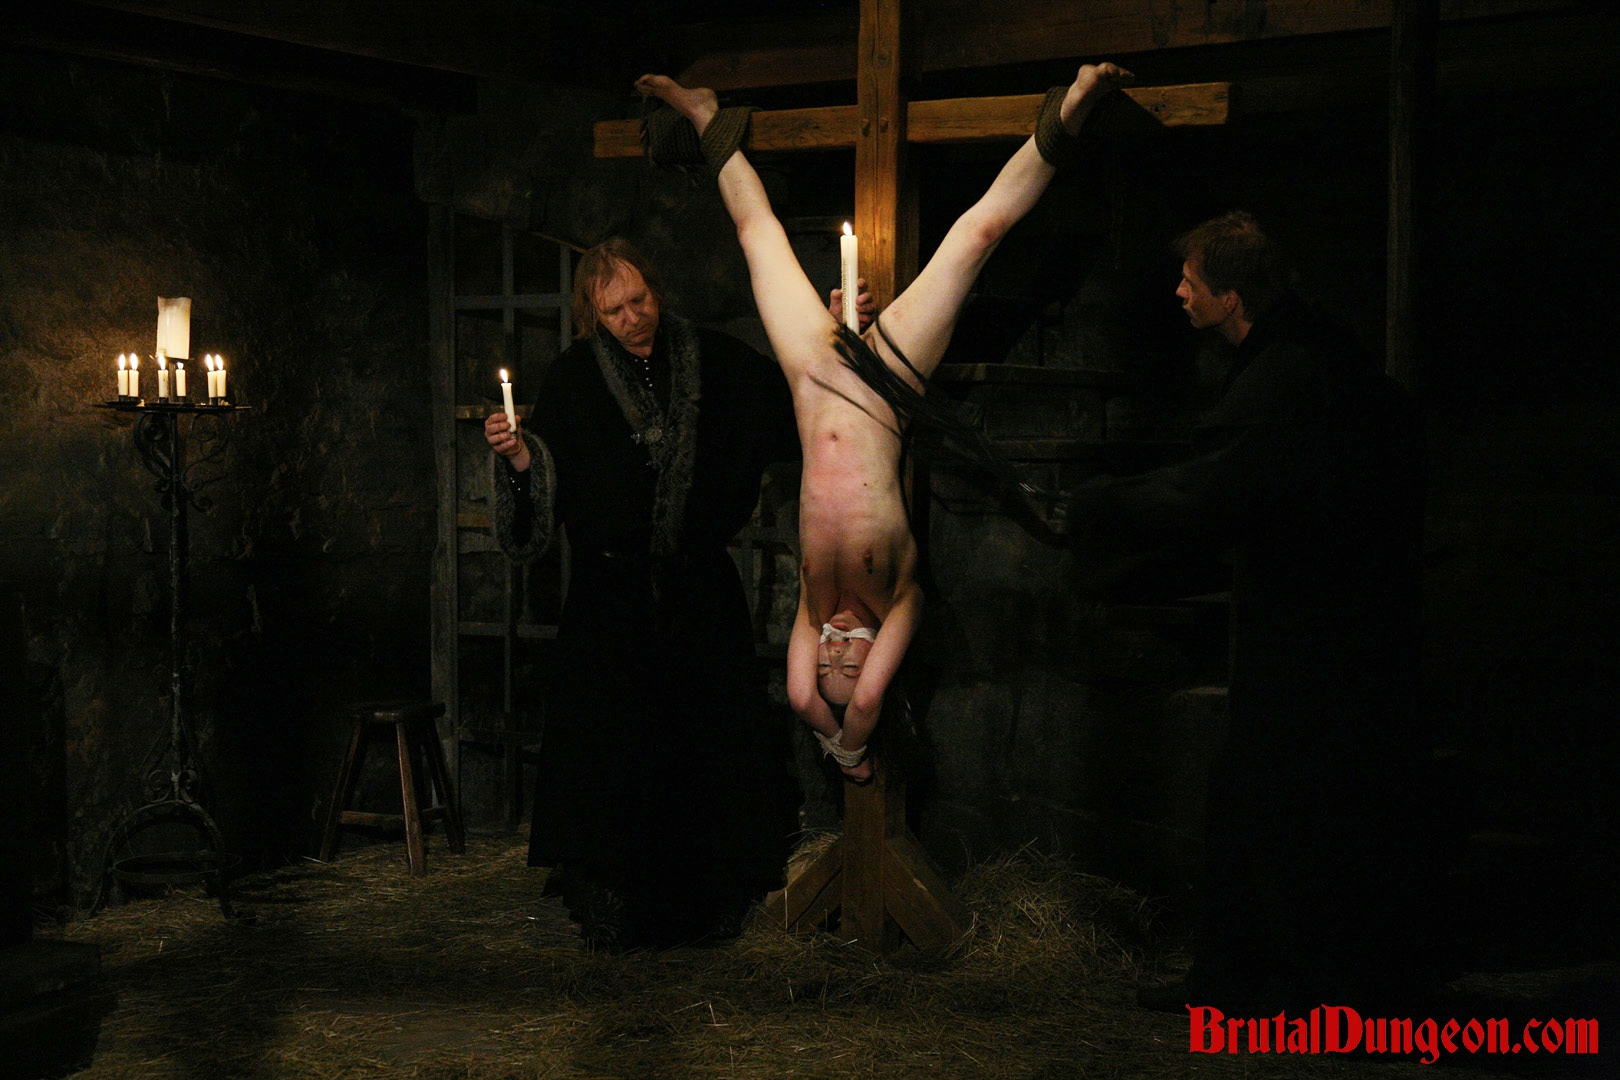 Brunette mathilda bdsm gang bang. Slim brunette Mathilda was arrested for witchcraft and prostitution. She must endure imprisonment, BDSM fun, gang bang, upside down suspension, spanking, slapping, fingering, breast, nipple and kitty tortured with candle wax.